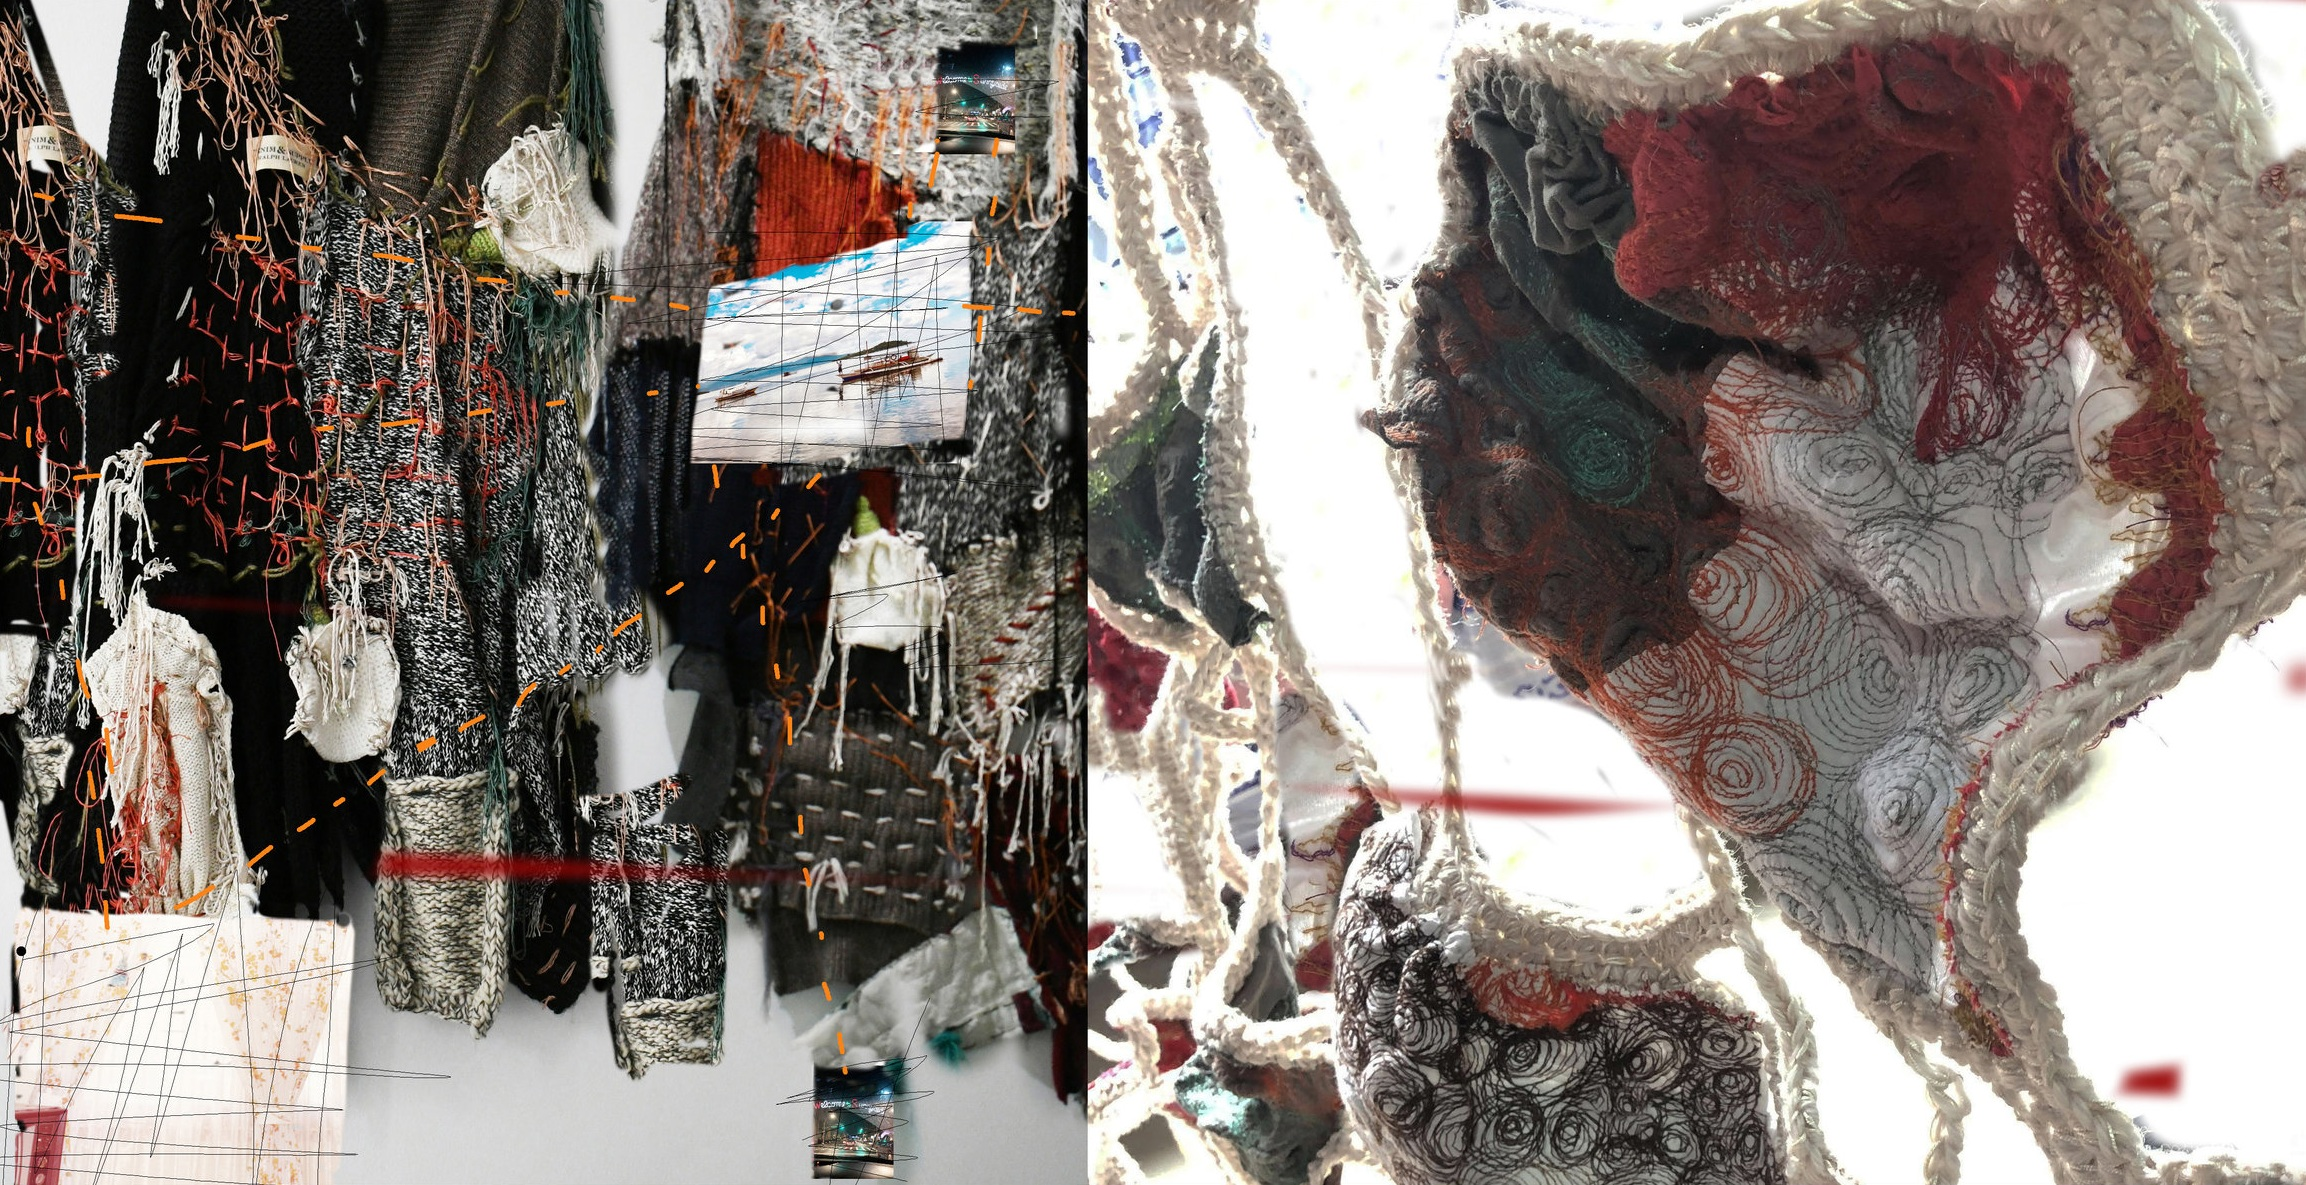 Image courtesy of the artists: Ged Merino (Left) and Aze Ong (Right)